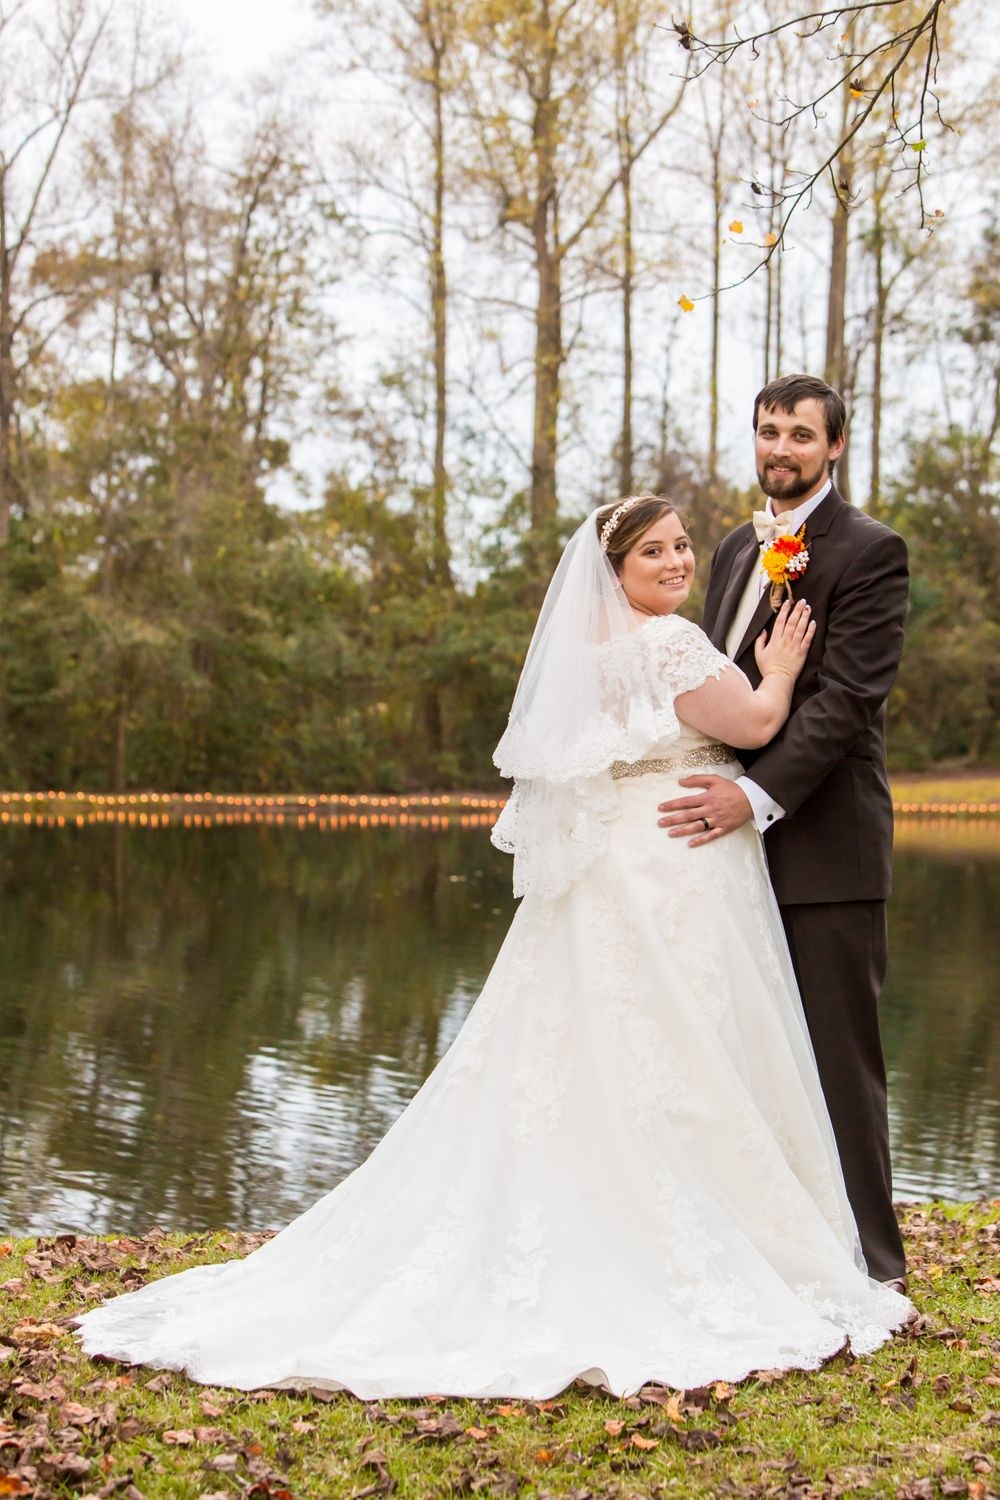 Bride Becca and groom Kyle pose by the pond after their wedding at T&S Farm in Leesville, SC